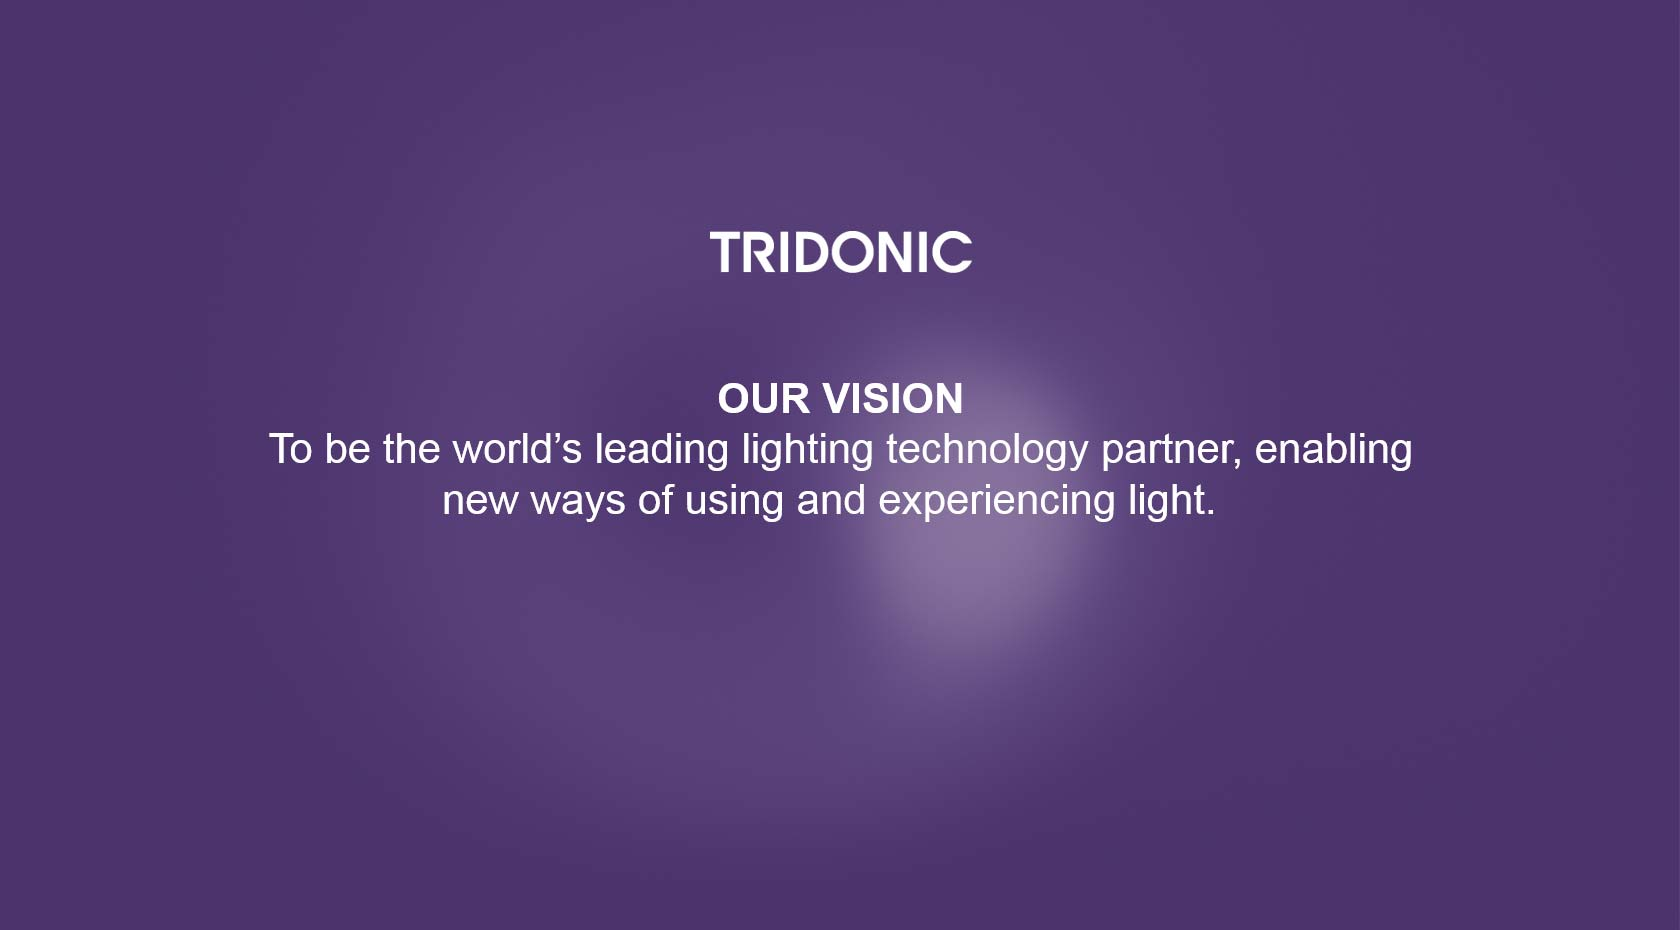 Tridonic Vision: To be the world's leading lighting technology partner, enabling new ways of using and experiencing light.